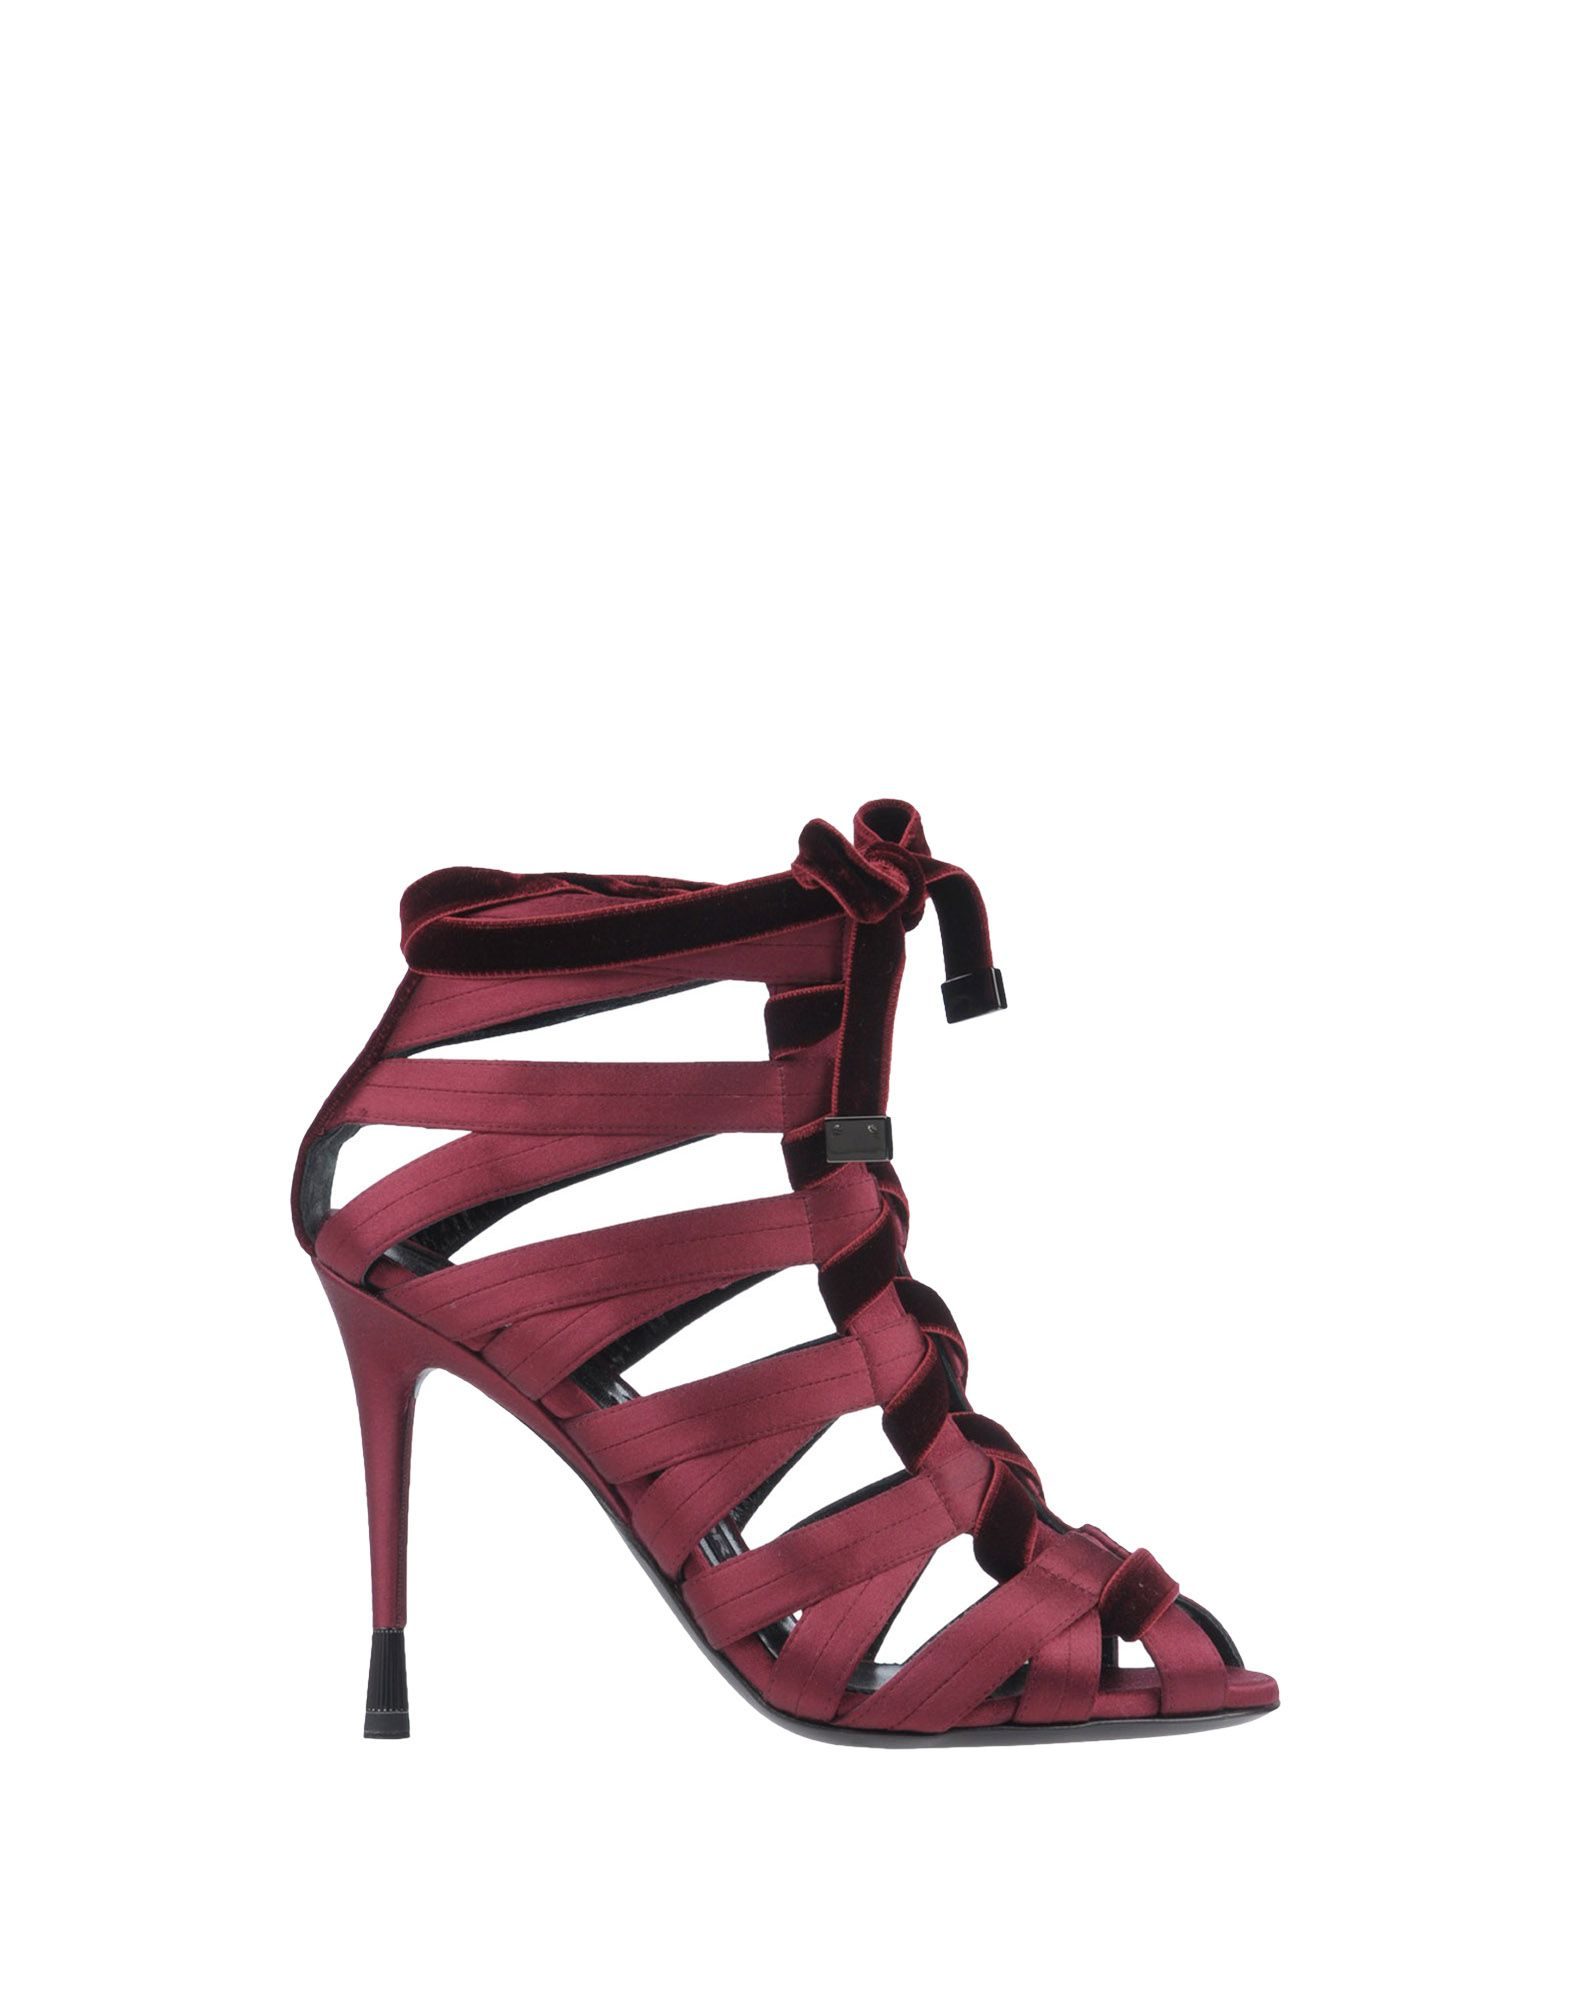 Sandales Tom Ford Femme - Sandales Tom Ford sur